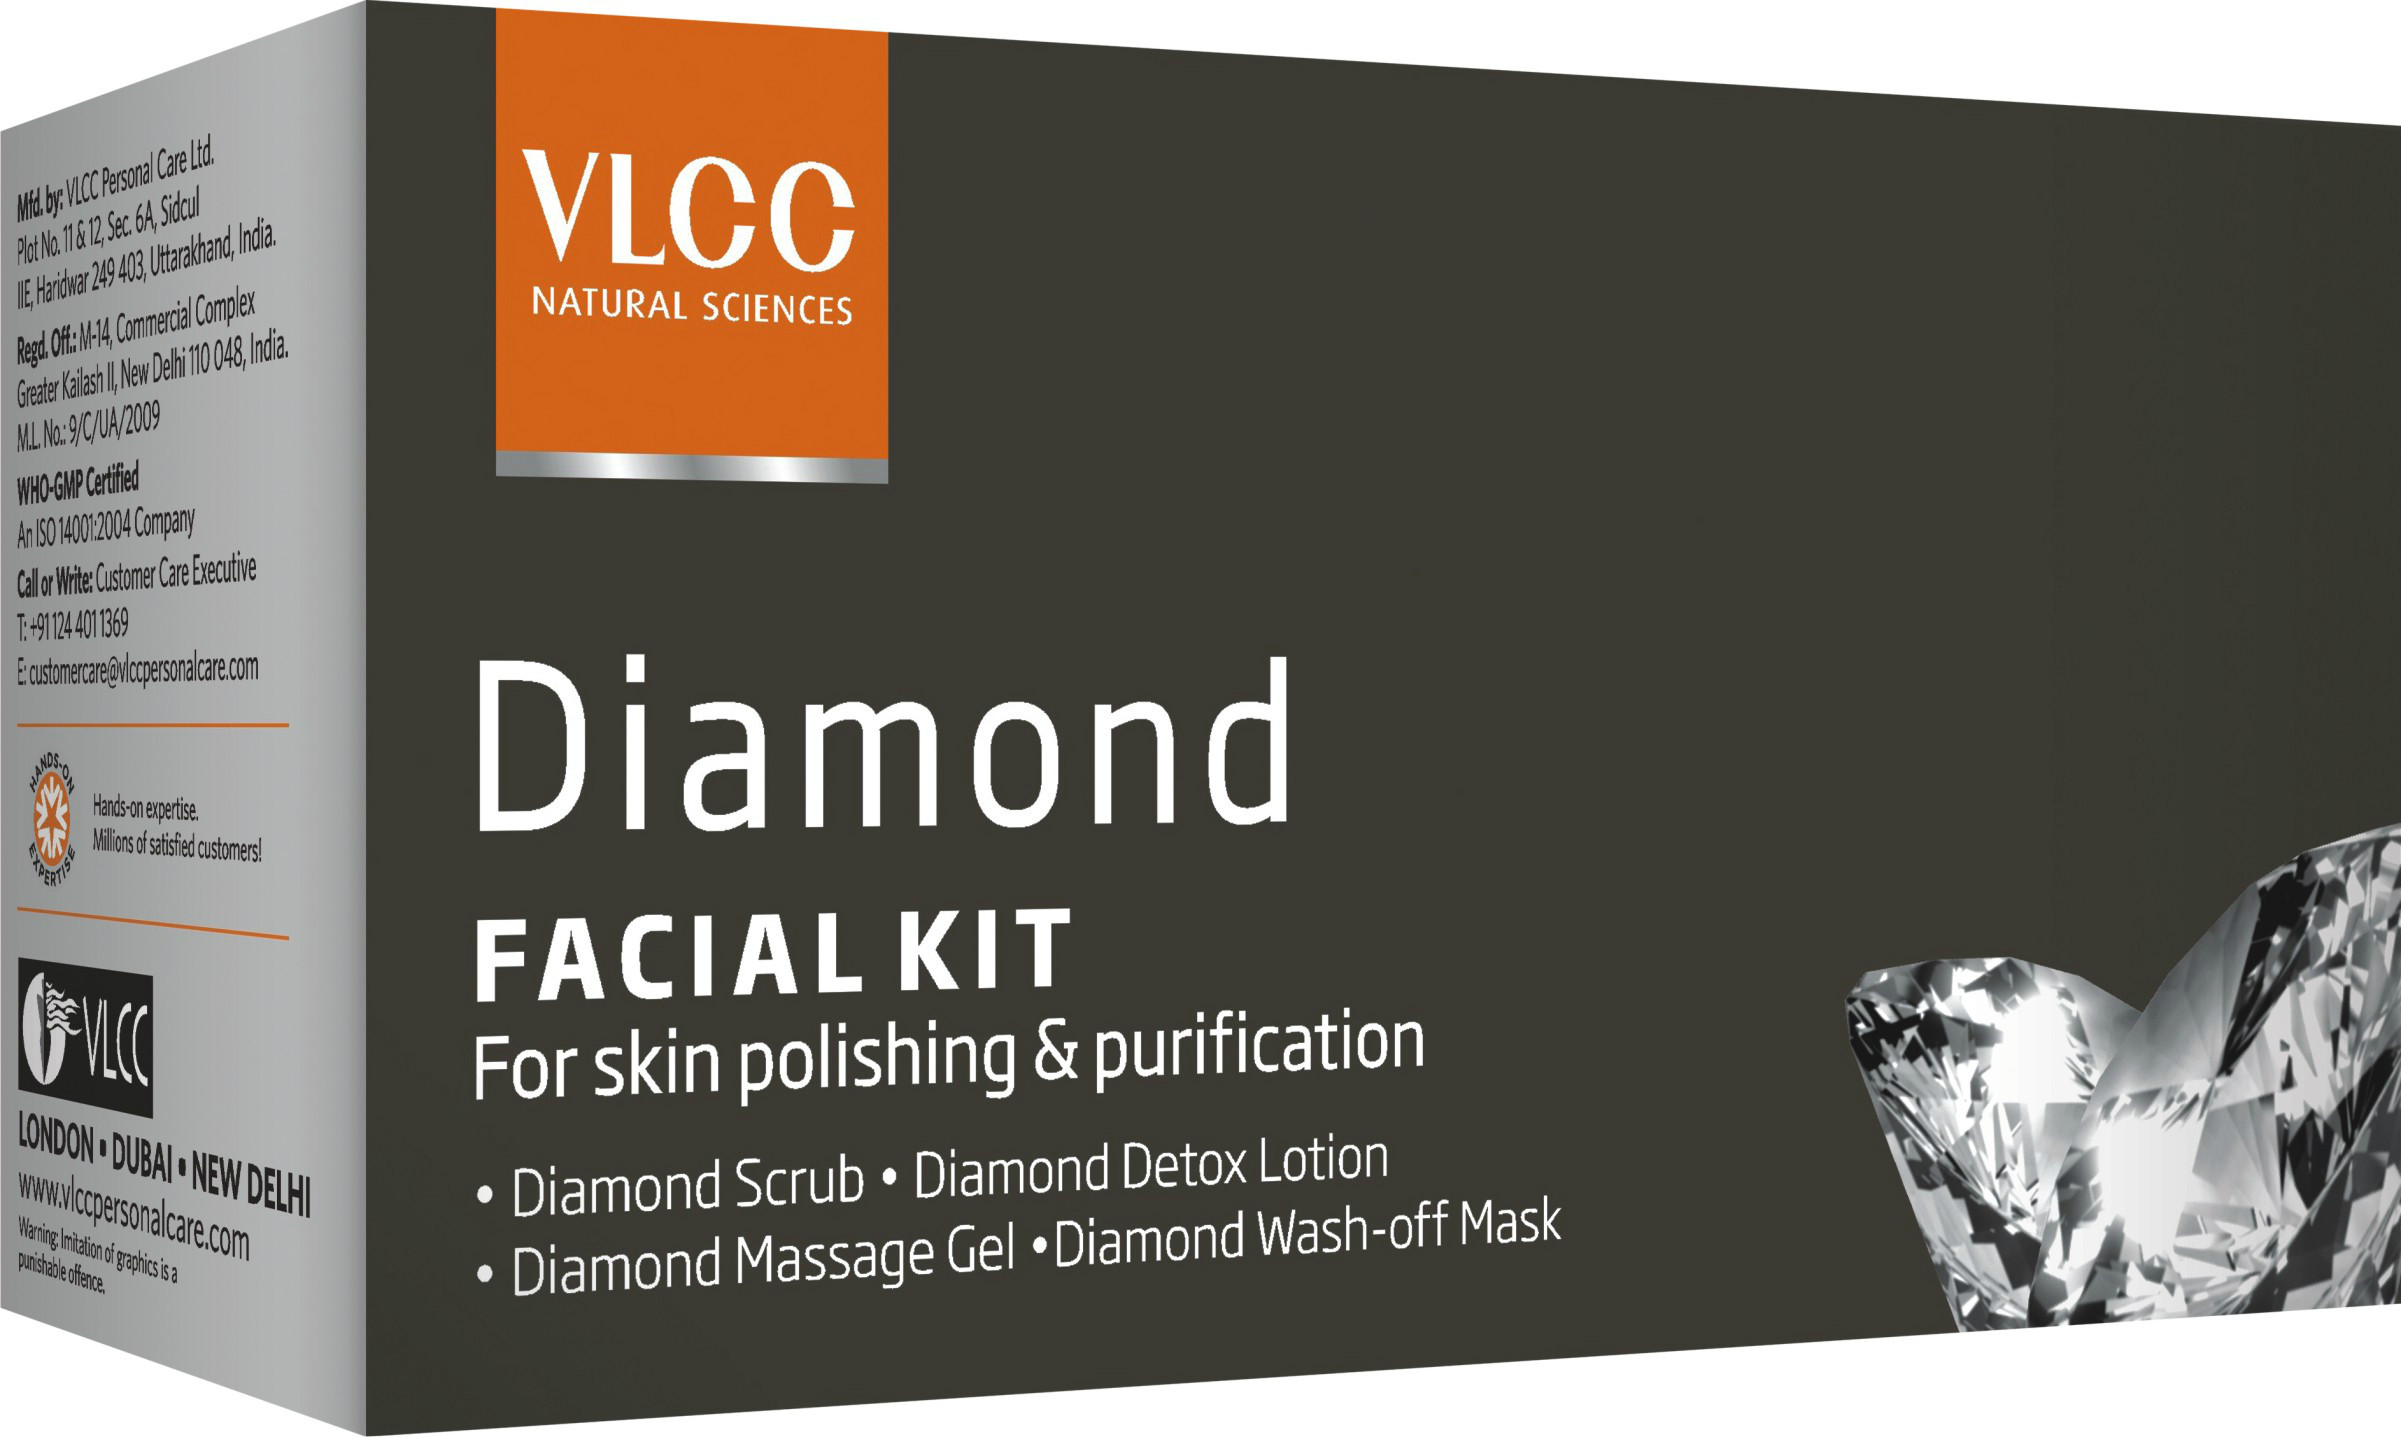 kitchen stores online vintage curtains vlcc diamond facial kit 30.35 g - price in india, buy ...